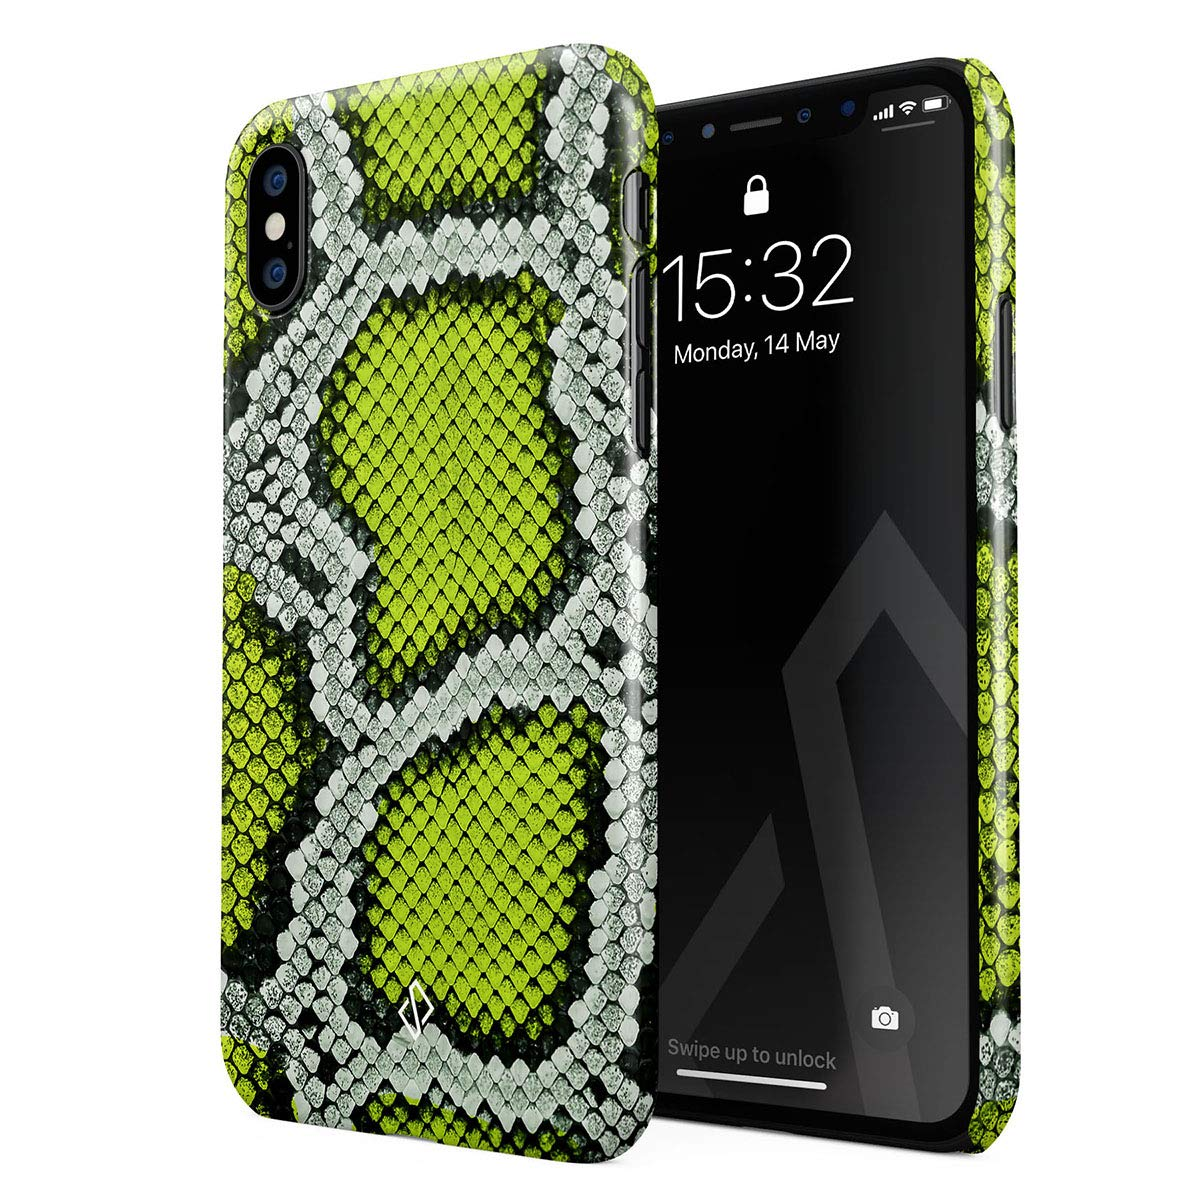 BURGA Phone Case Compatible with iPhone Xs Max - Neon Green Snake Skin Print Serpent Pattern Summer Exotic Tropical Cute Case for Women Thin Design Durable Hard Plastic Protective Case